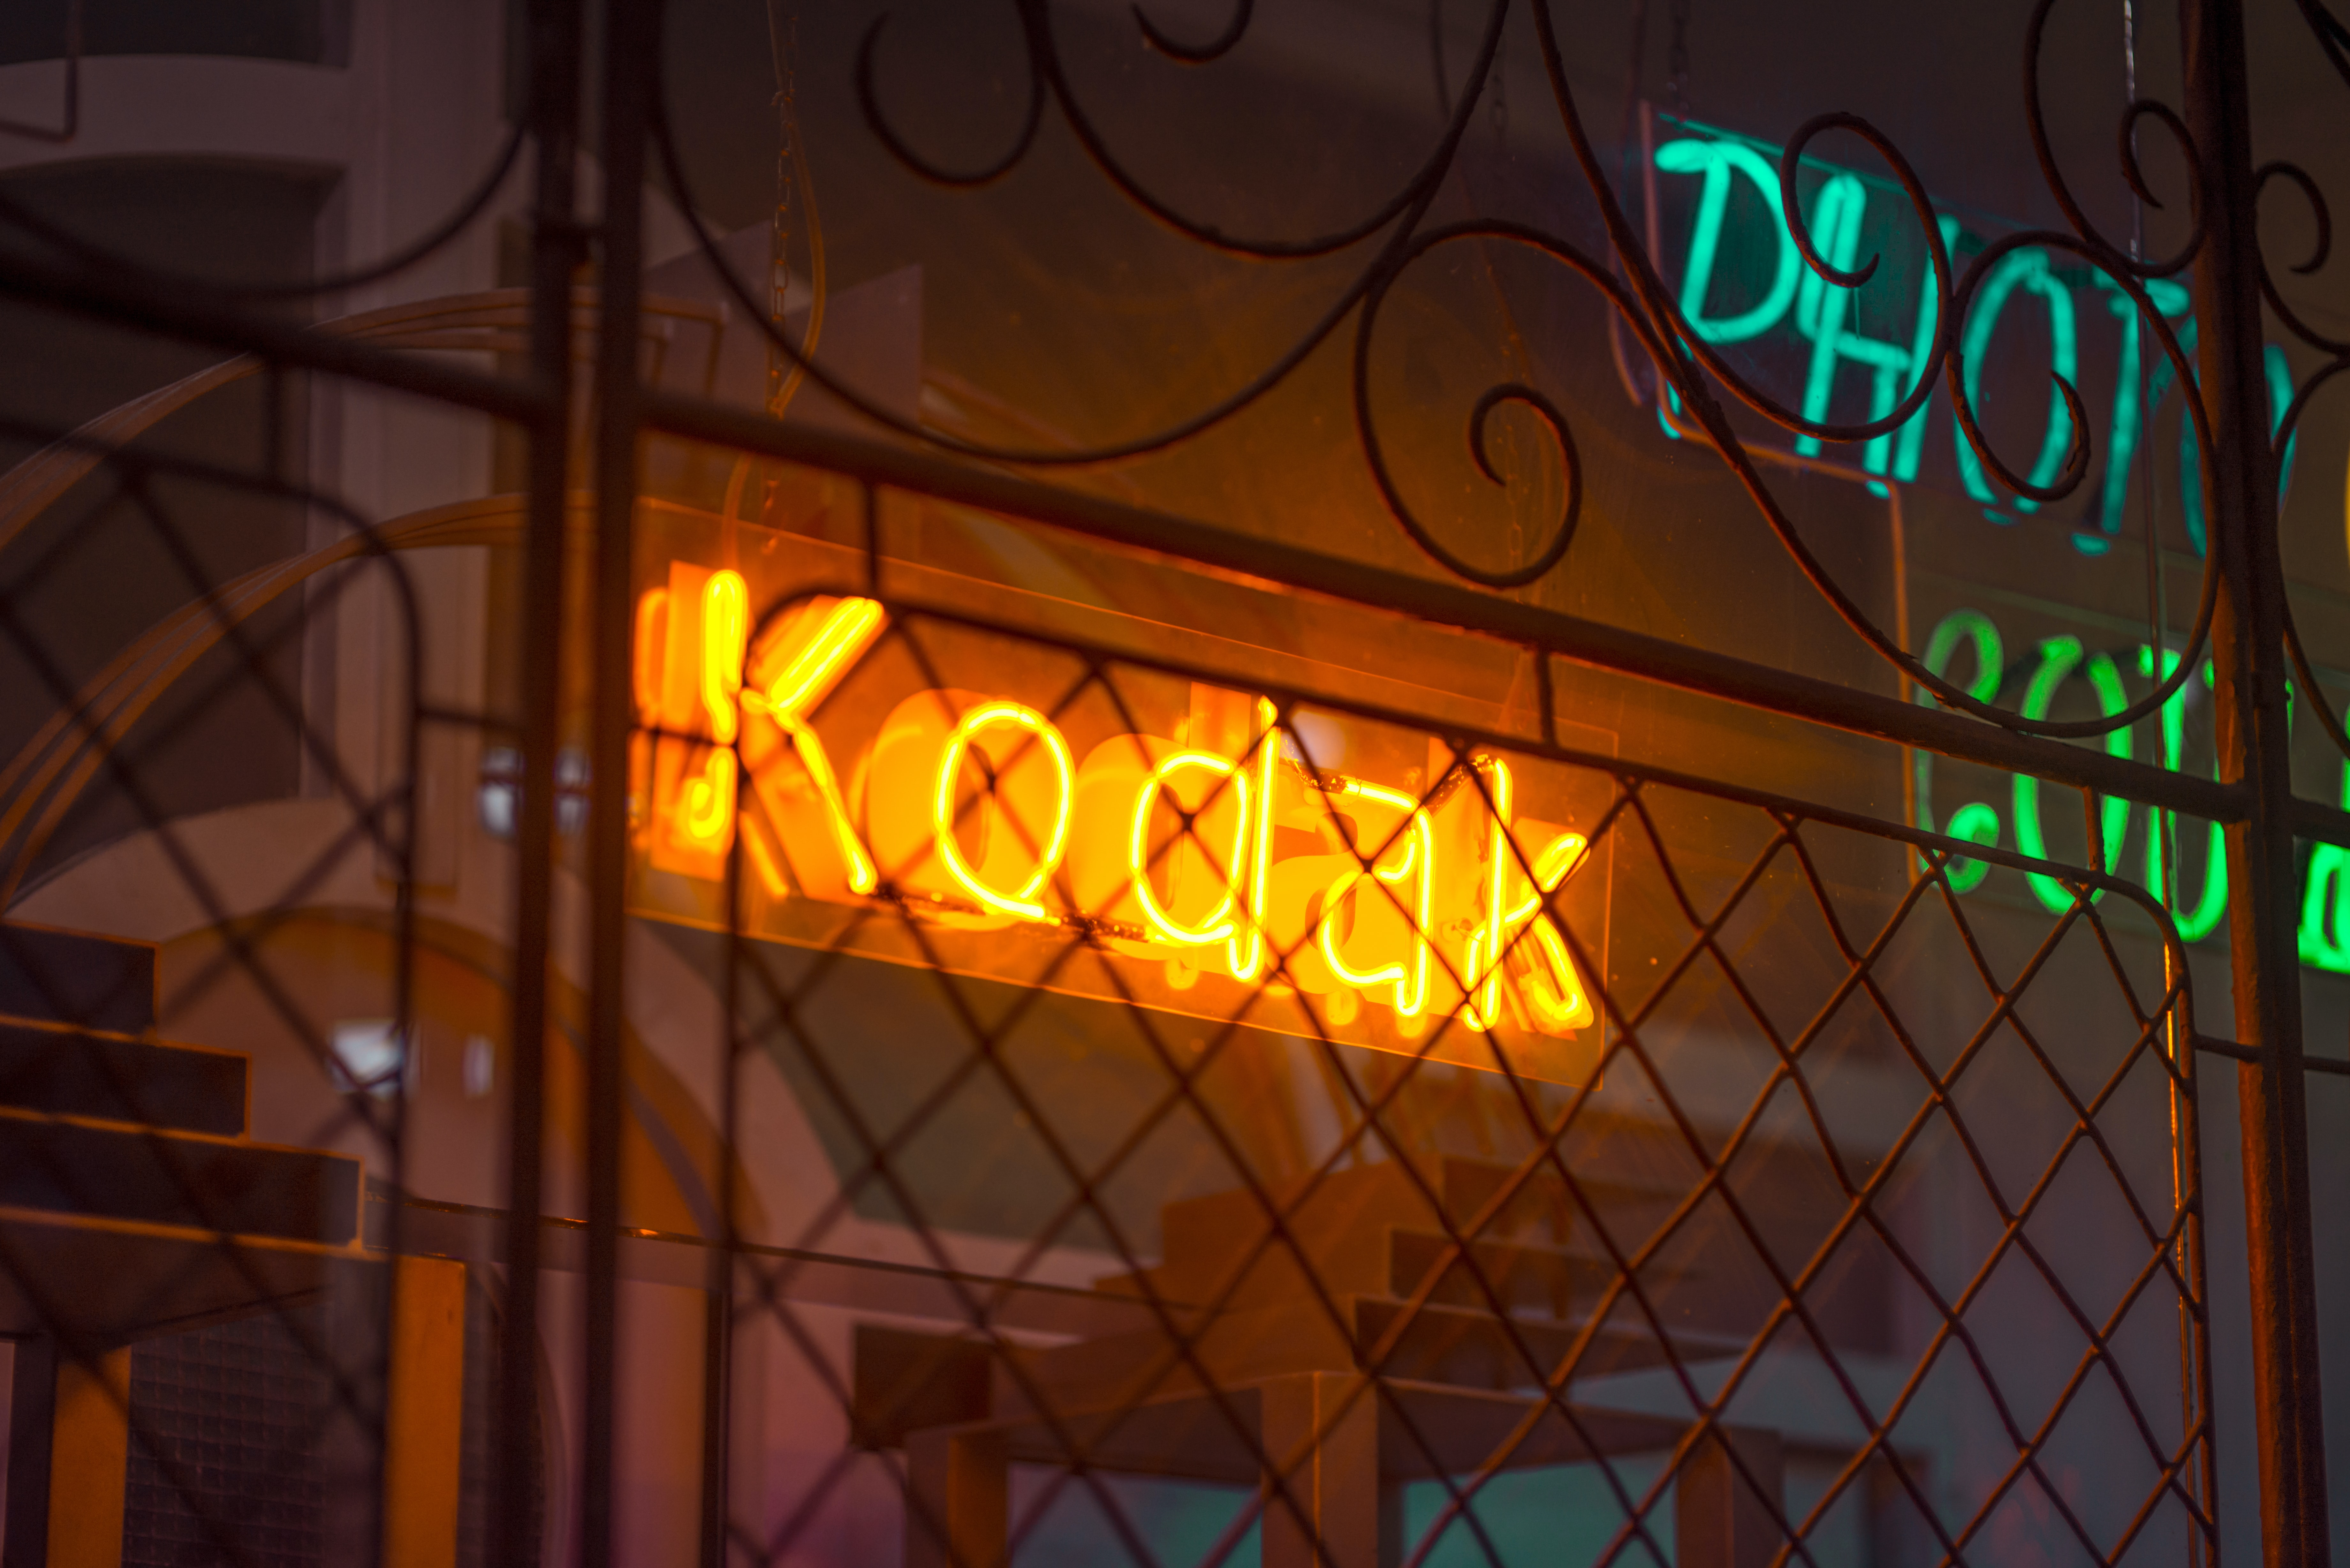 orange Kodak neon light signage